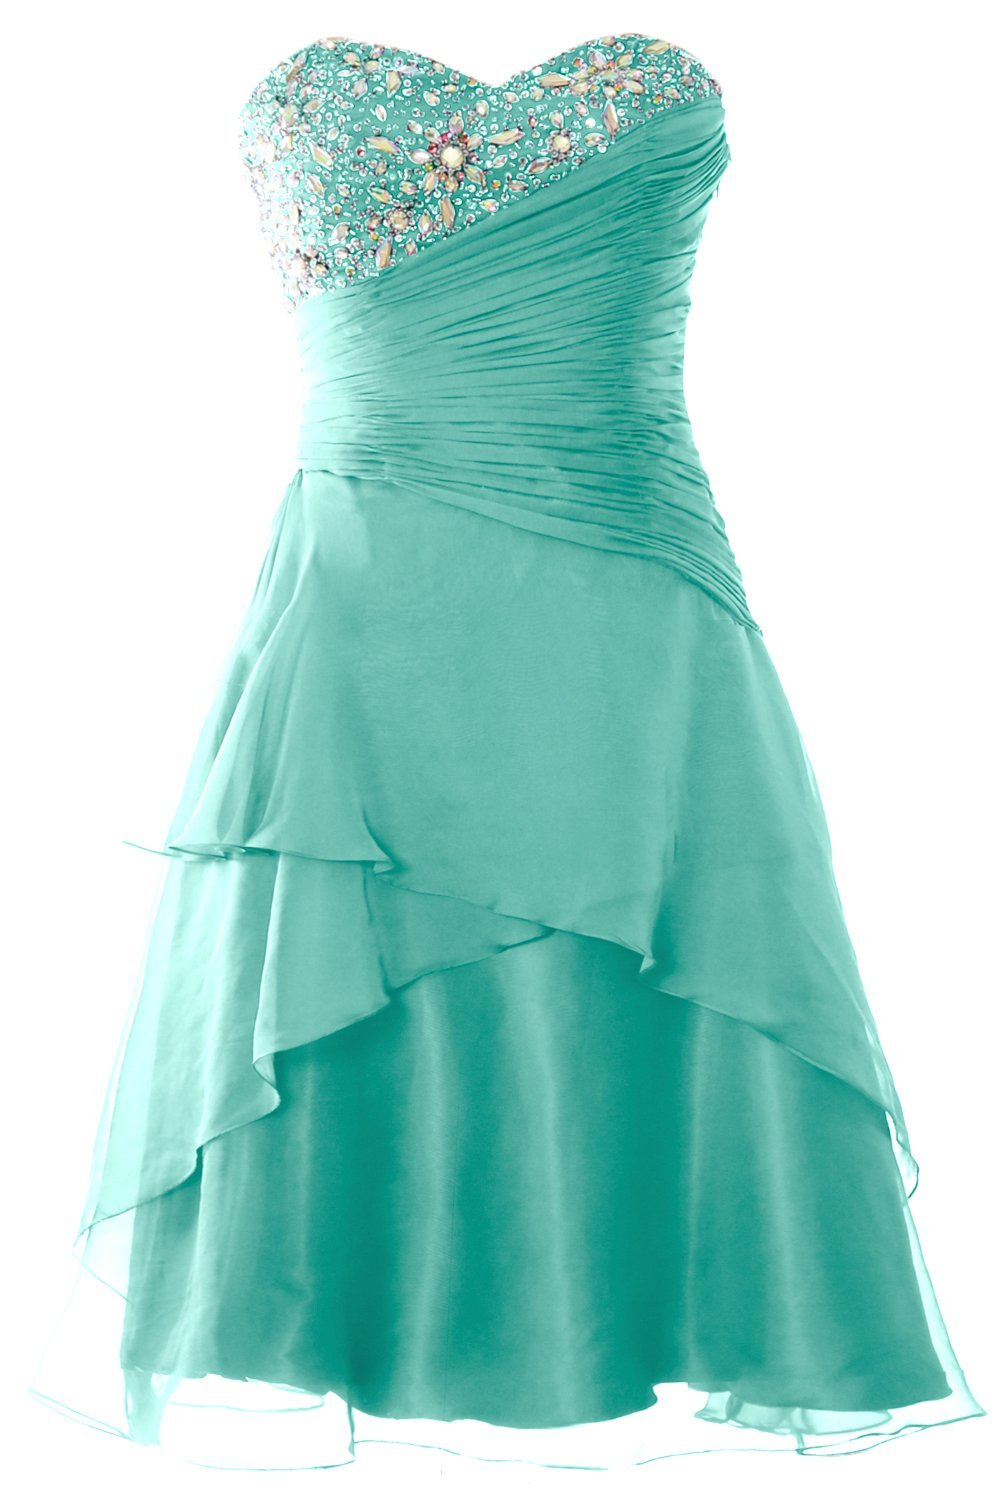 MACloth Women Strapless Short Prom Dress Tiered Cocktail Party Formal Gown (10, Turquoise)